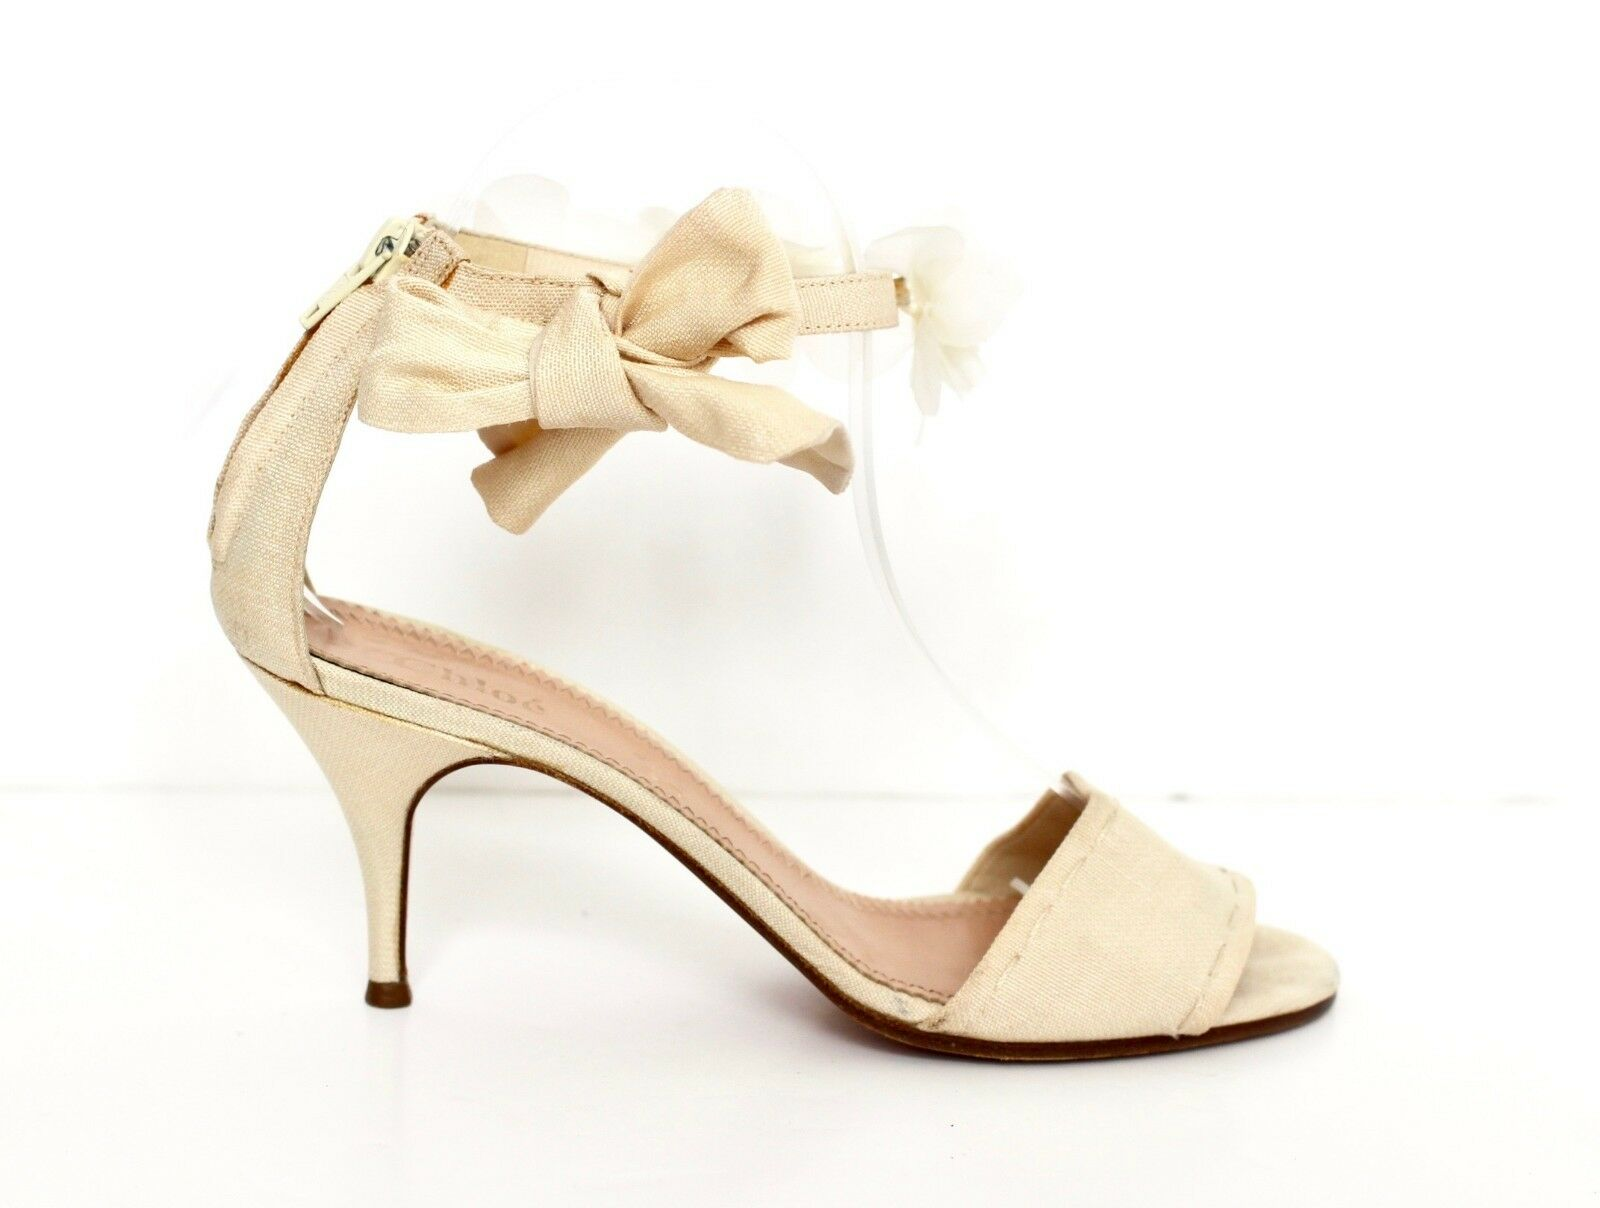 CHLOE ivory open toe sandal heels cherry blossom ankle strap IT38.5 UK5.5 US8.5